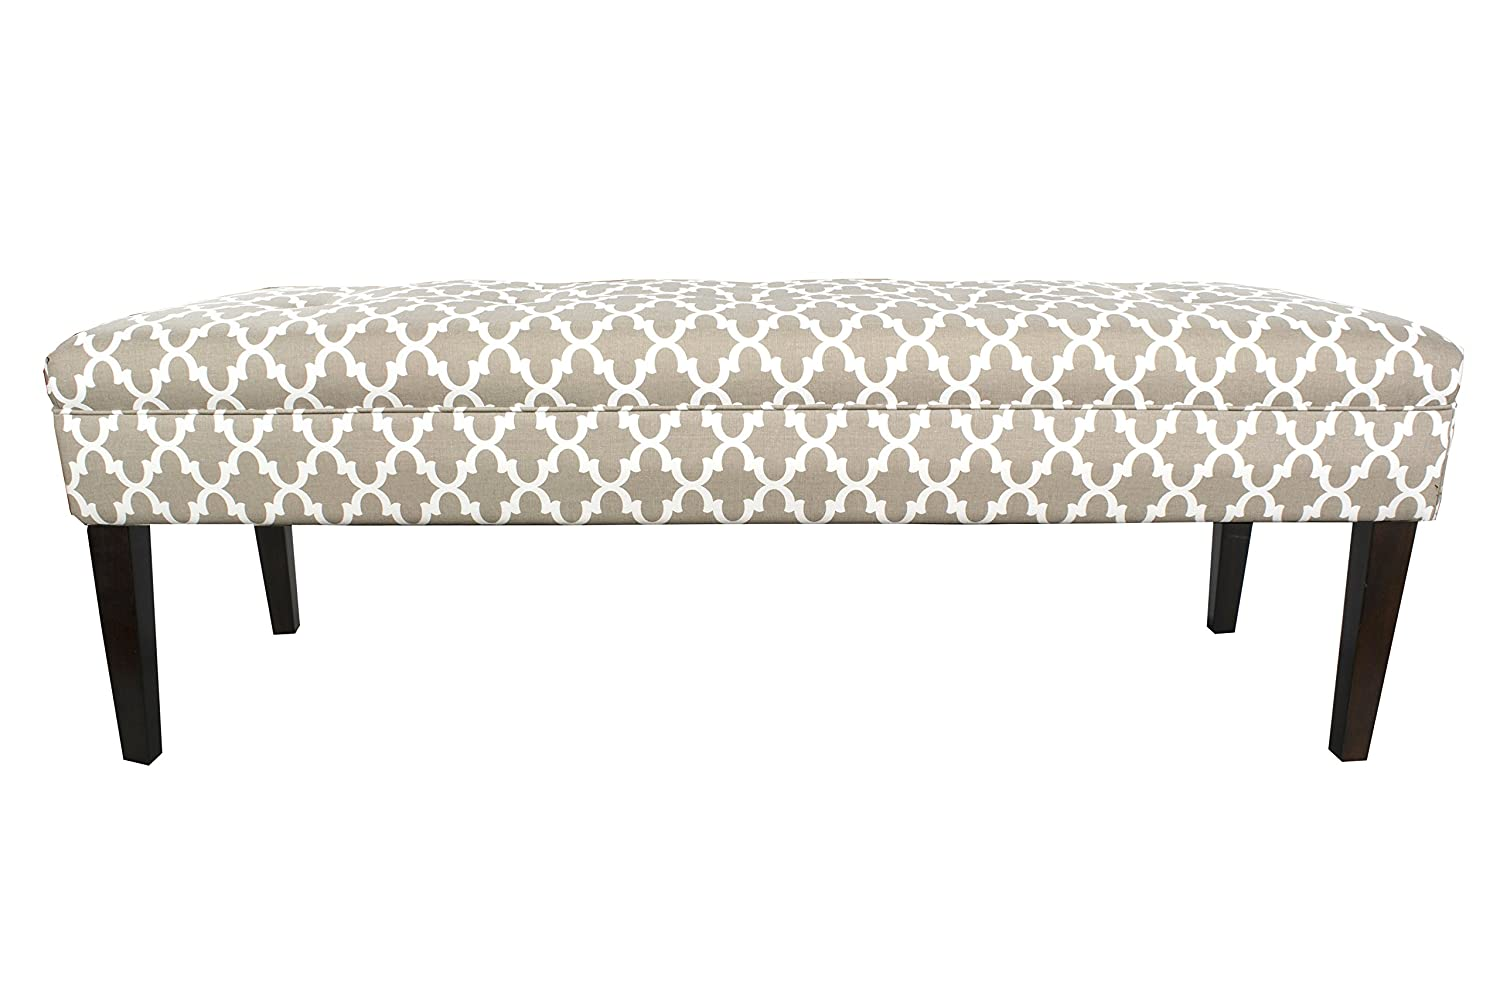 MJL Furniture Designs Kaya Collection Upholstered Padded Button Tufted Accent Bedroom Bench, Fulton Series, Snowy Kaya-FultonSnowy